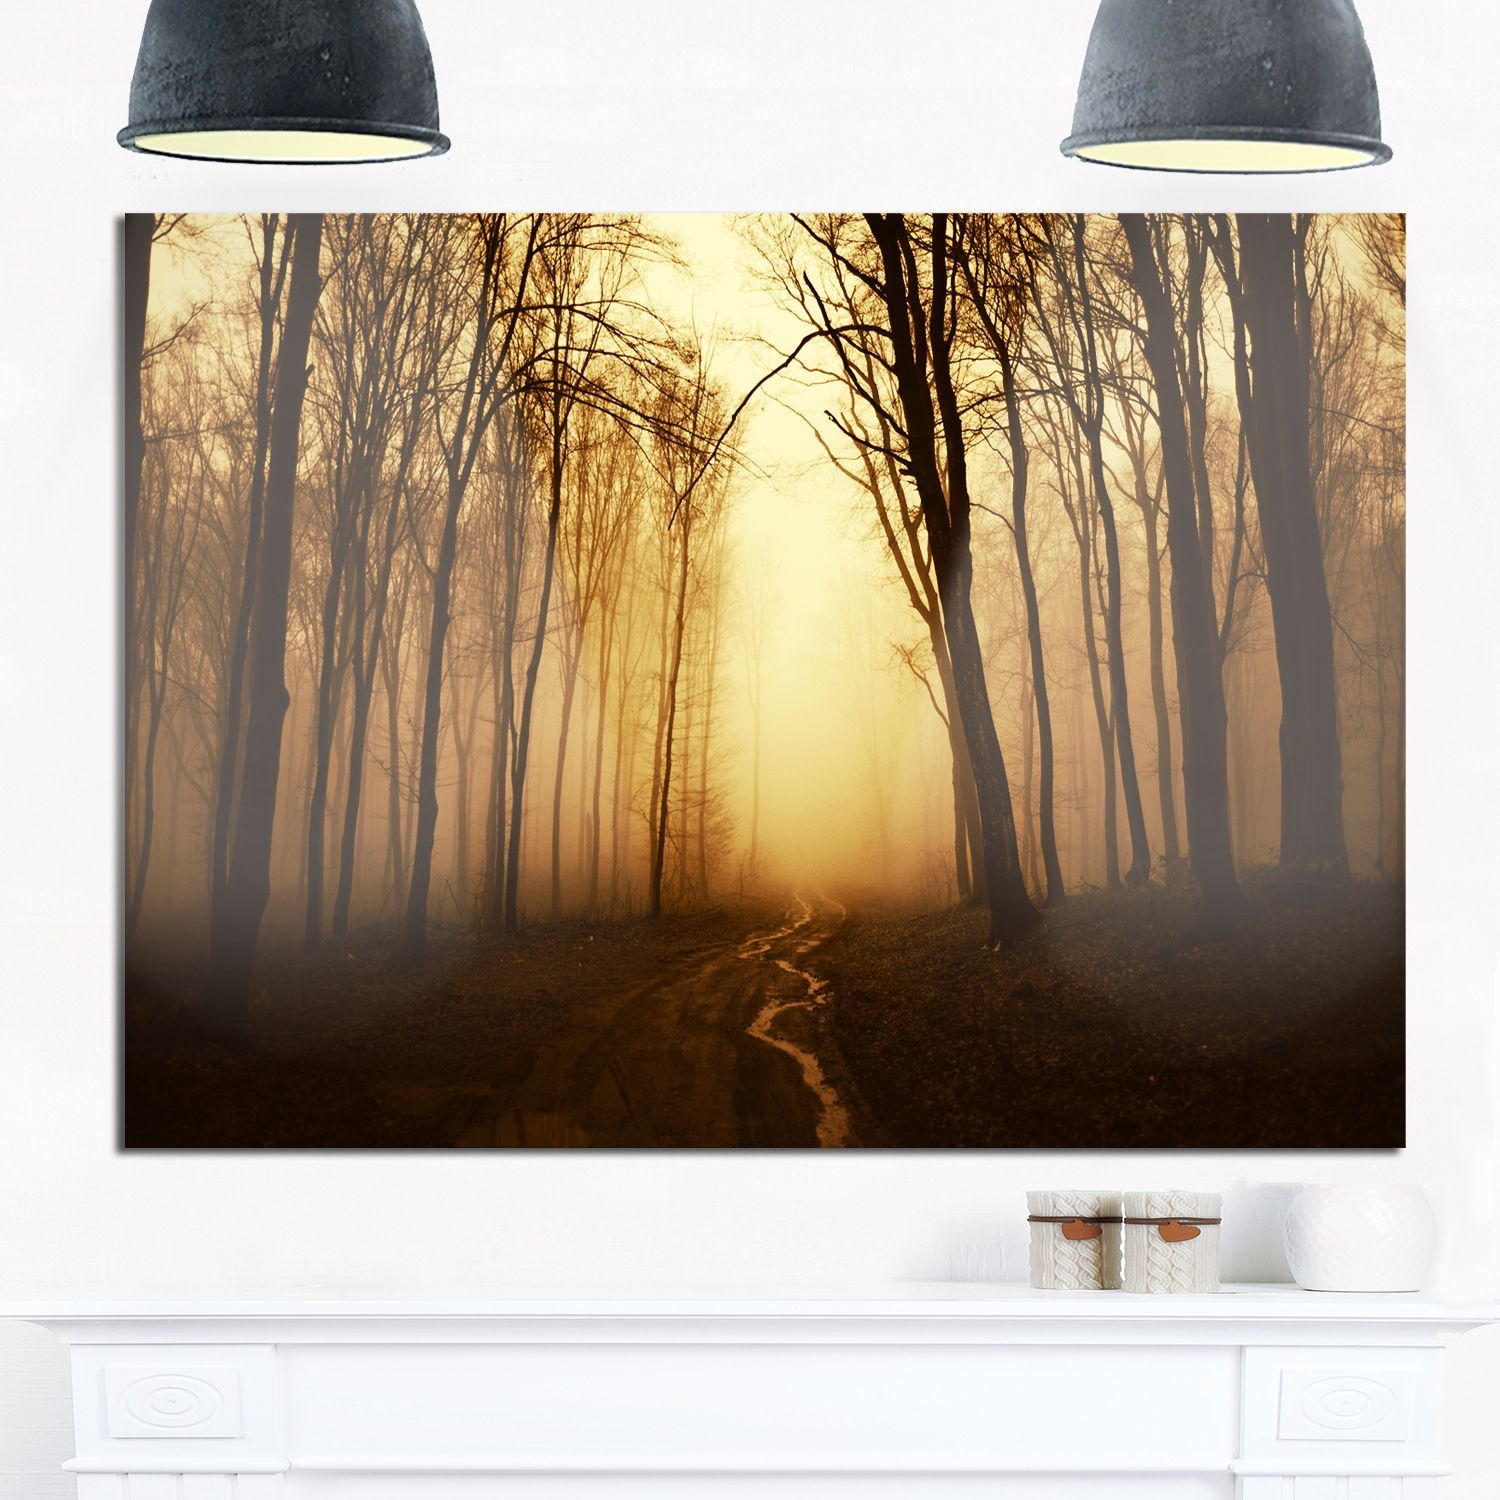 Road in Forest with Fall Fog - Landscape Photo Glossy Metal Wall Art